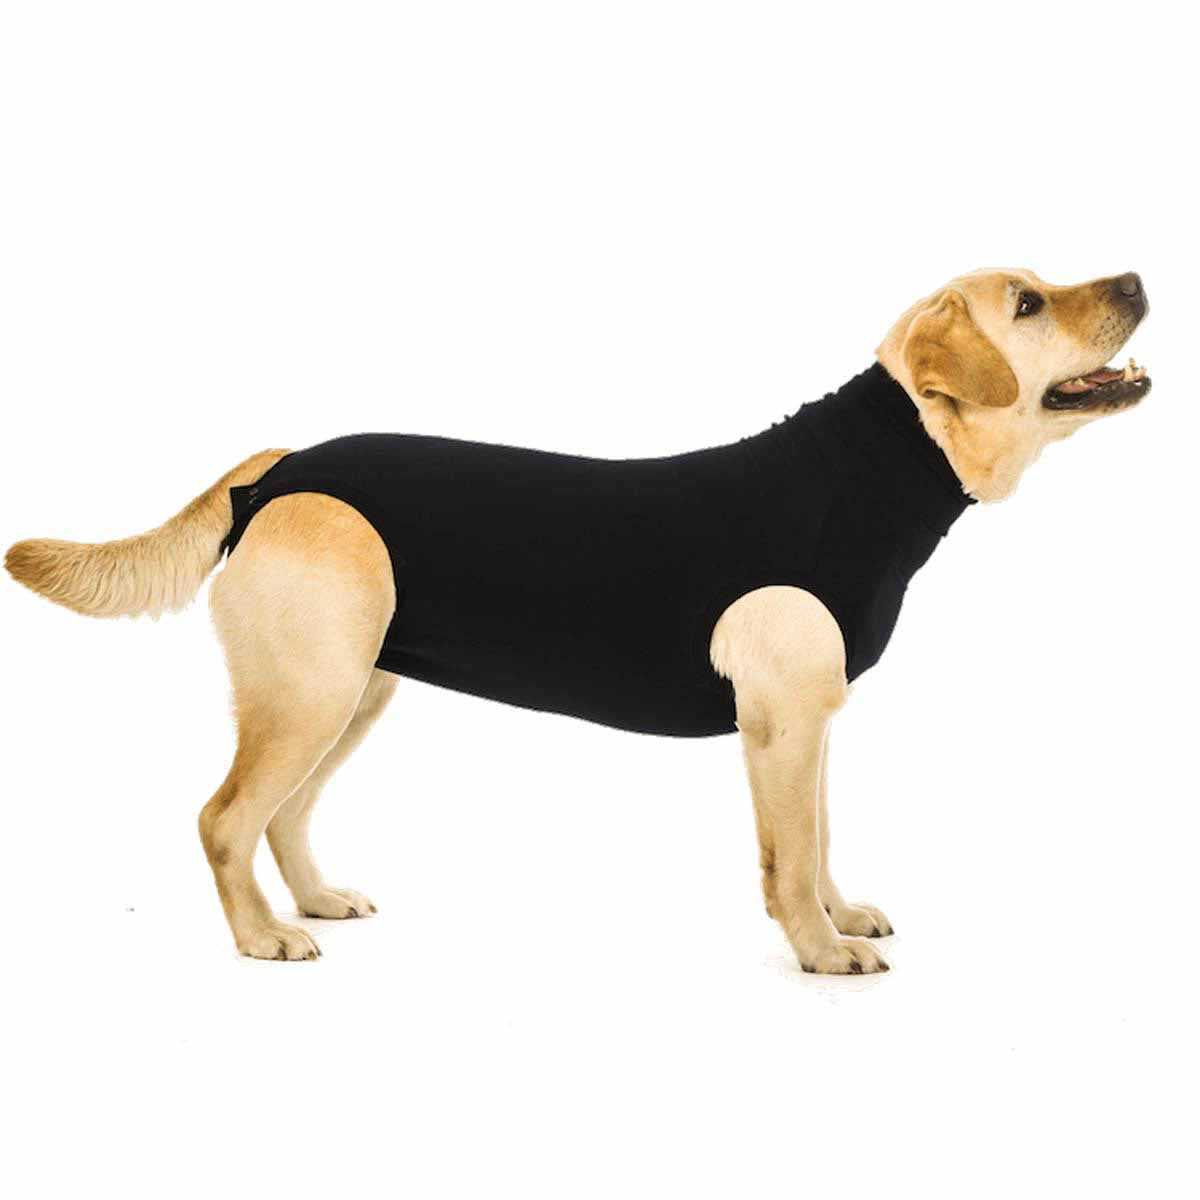 Suitical Dog Recovery Suit - Black